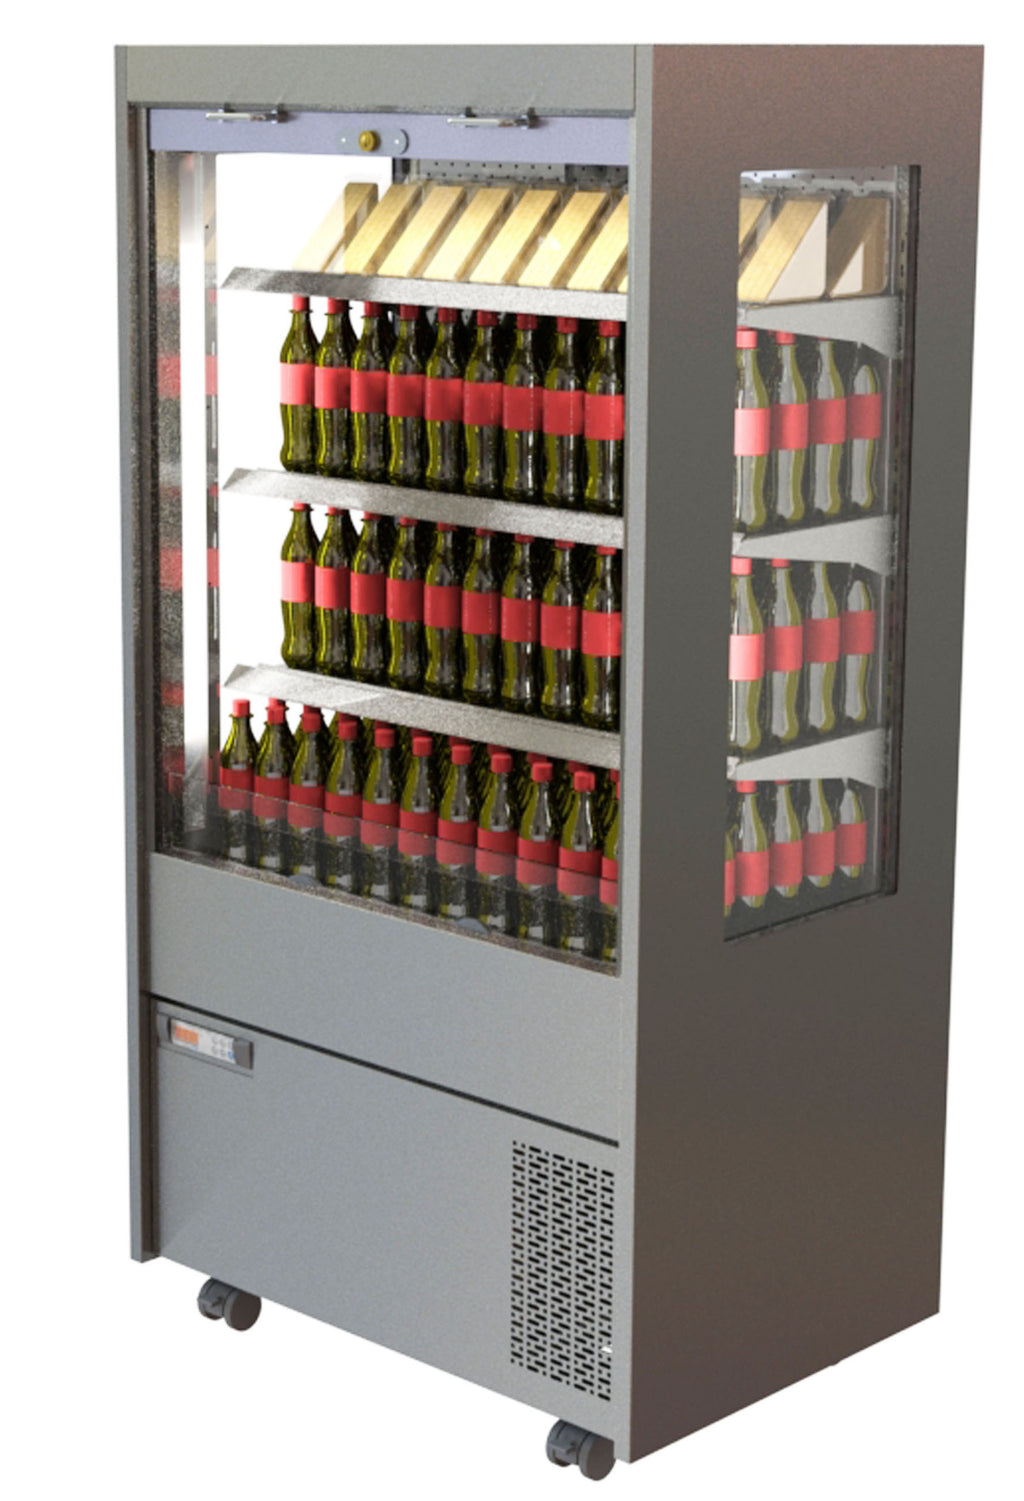 CED Chilled Multideck MM900SHT (With Panoramic glazed side panels)